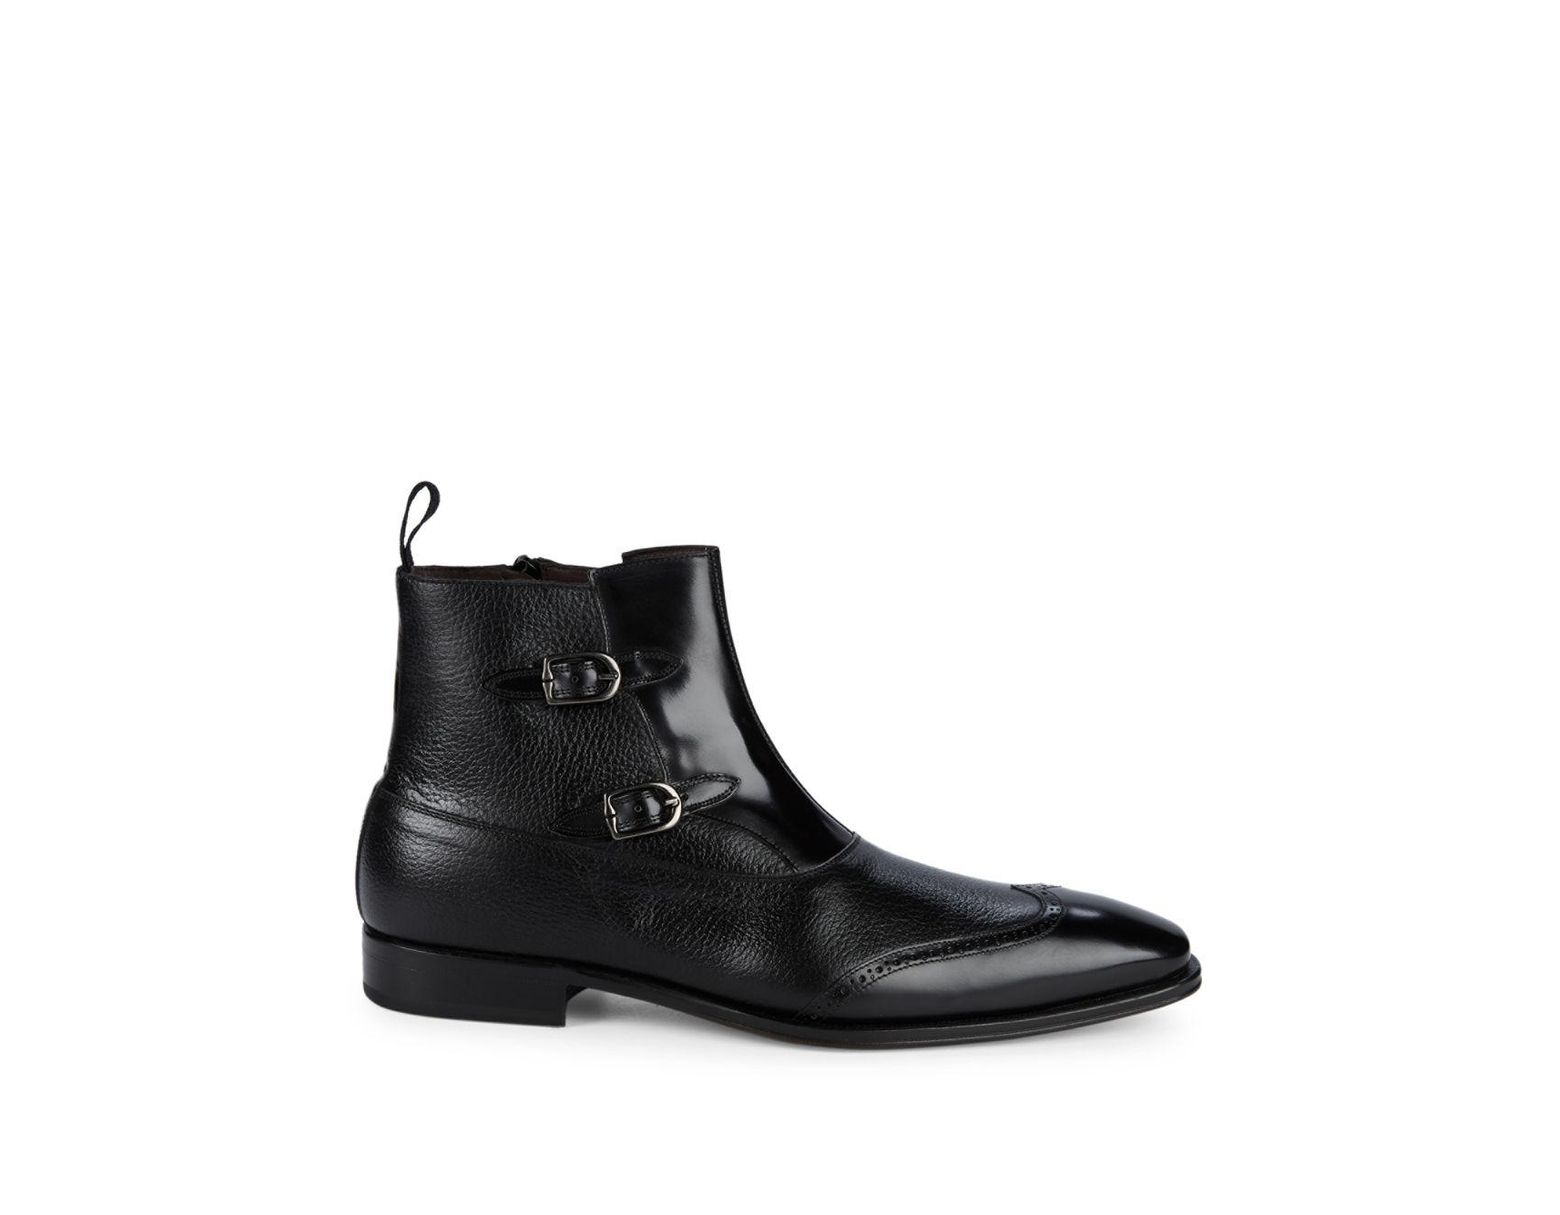 af22c548eae Women's Black Classic Leather Ankle Boots